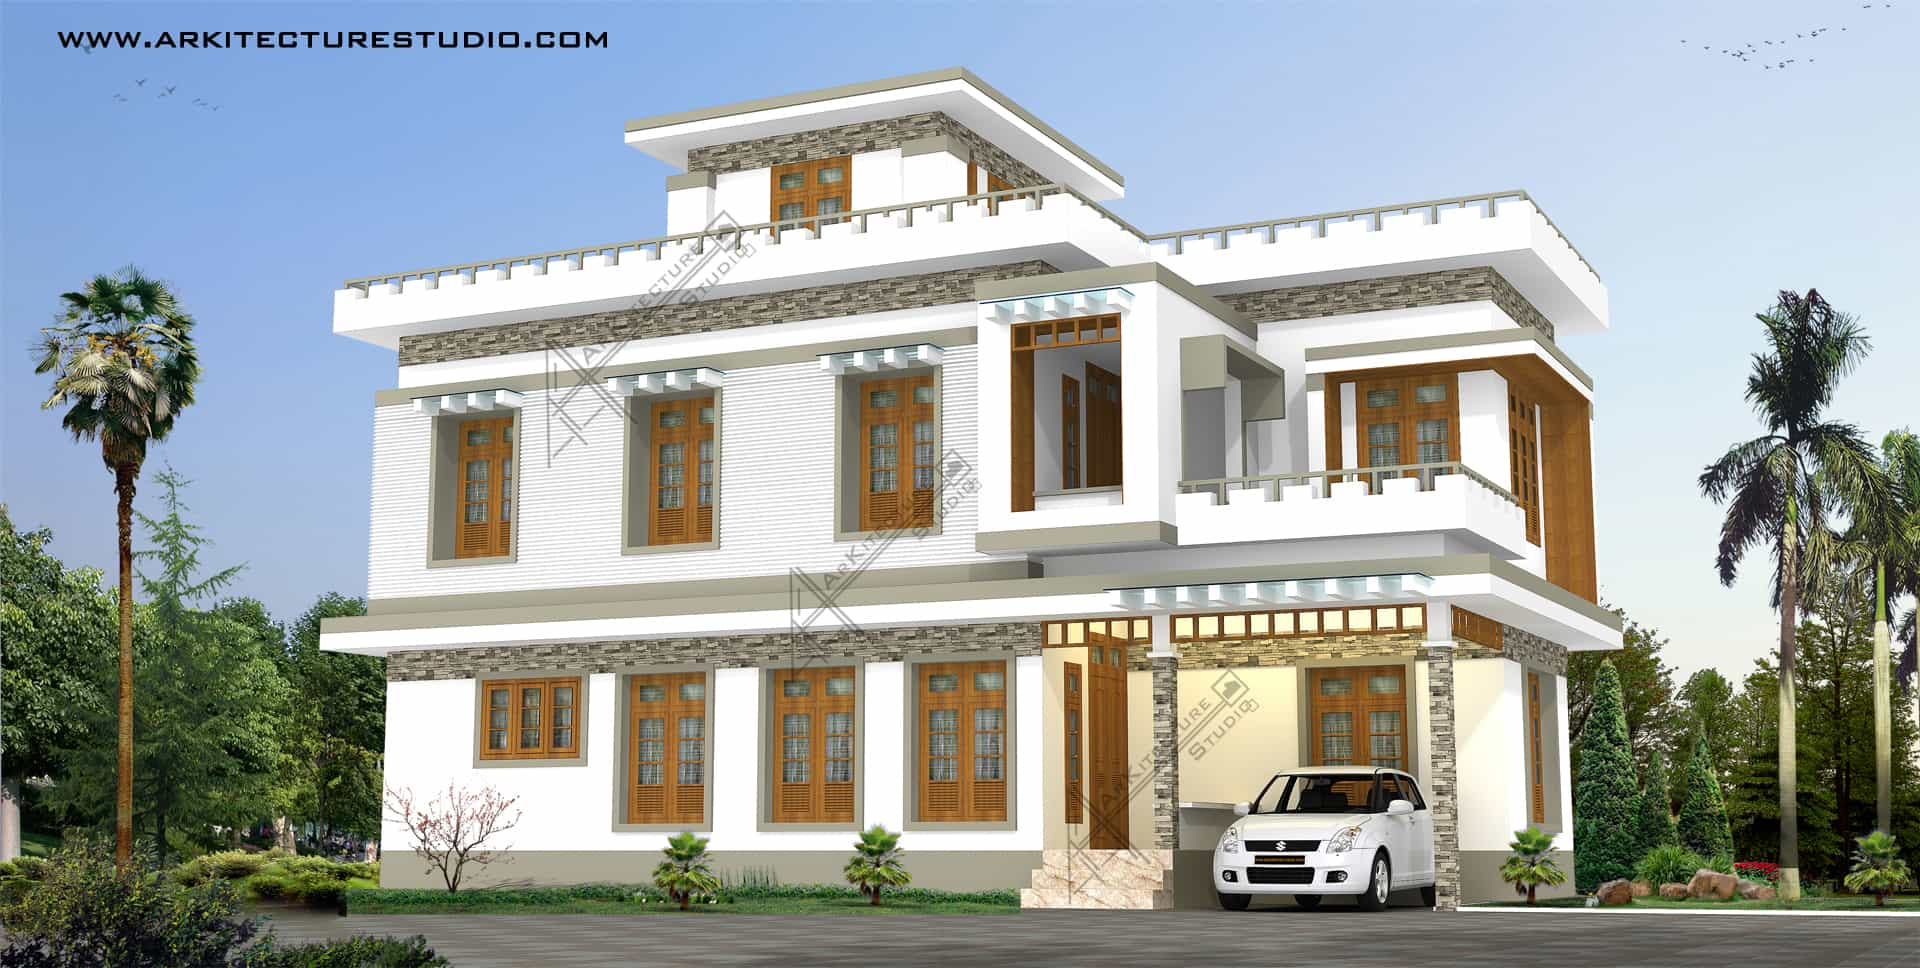 New Model House Plan In Kerala Images And Designs In Kerala New